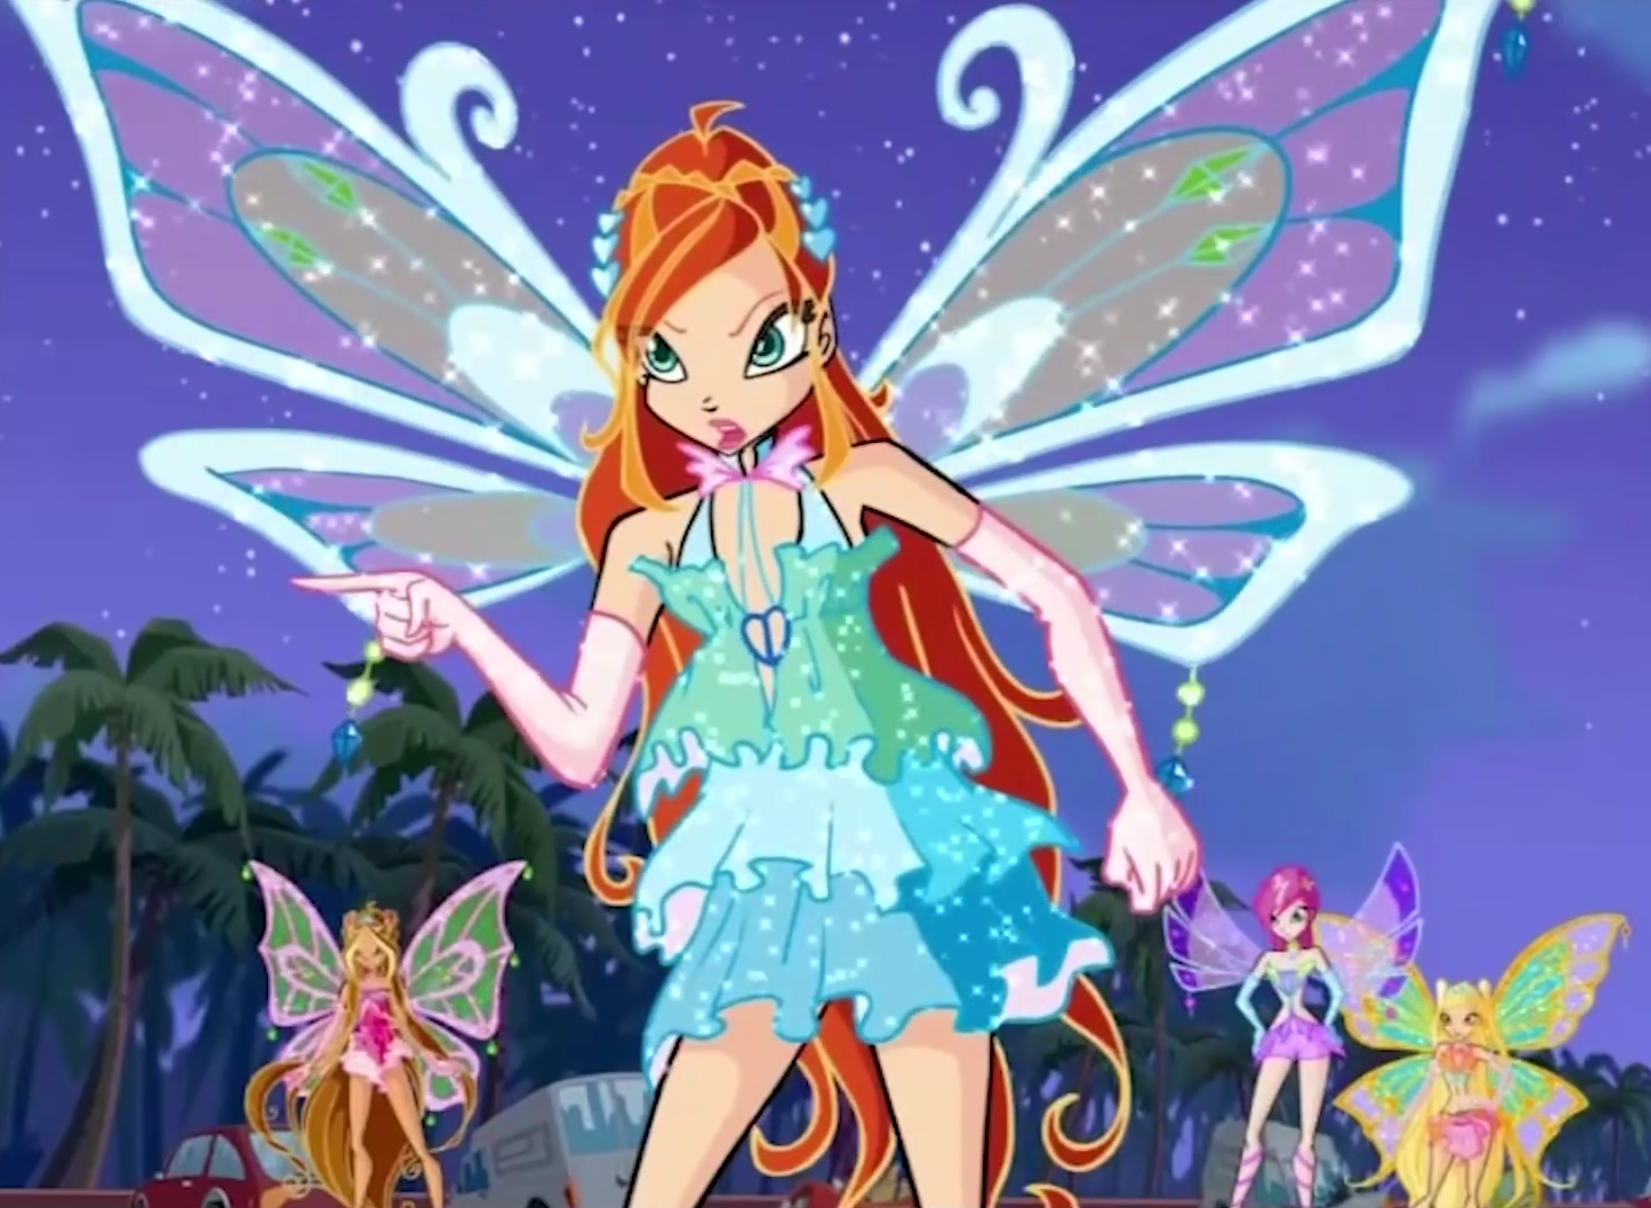 Plik:Winx club season 4 episode 3.png